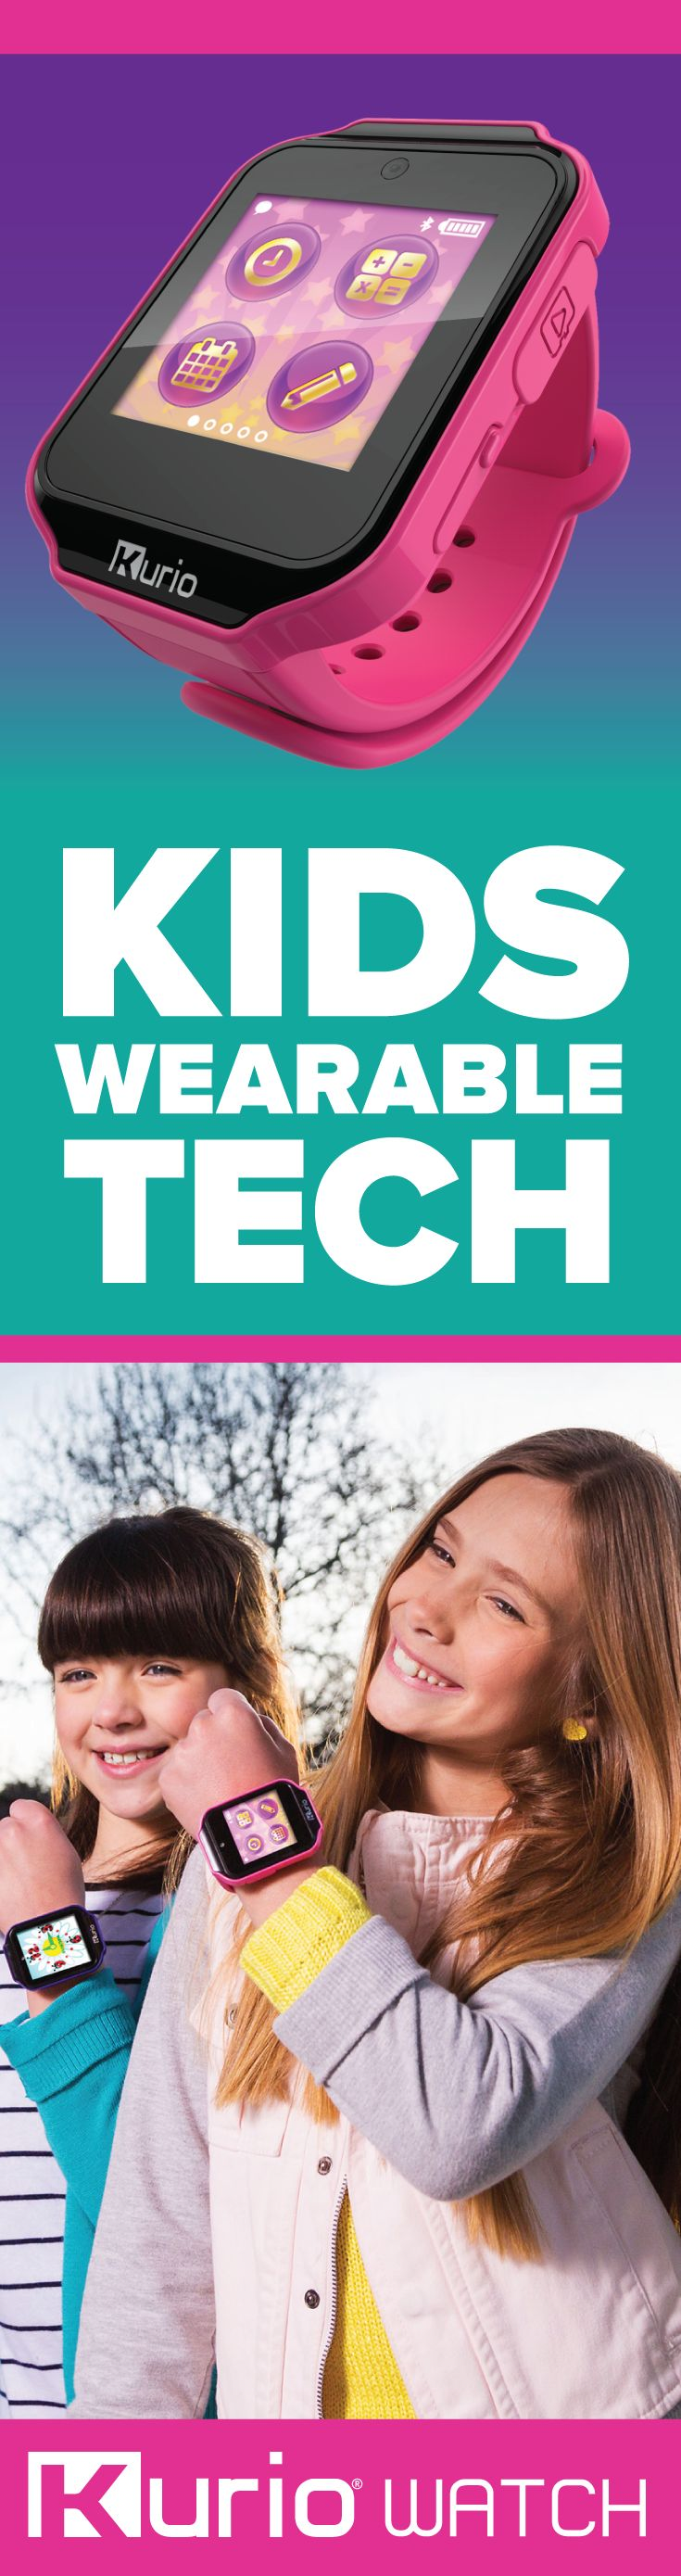 They Kurio Watch is a smartwatch made just for kids, and it just hit shelves at Toys''R''Us nationwide!